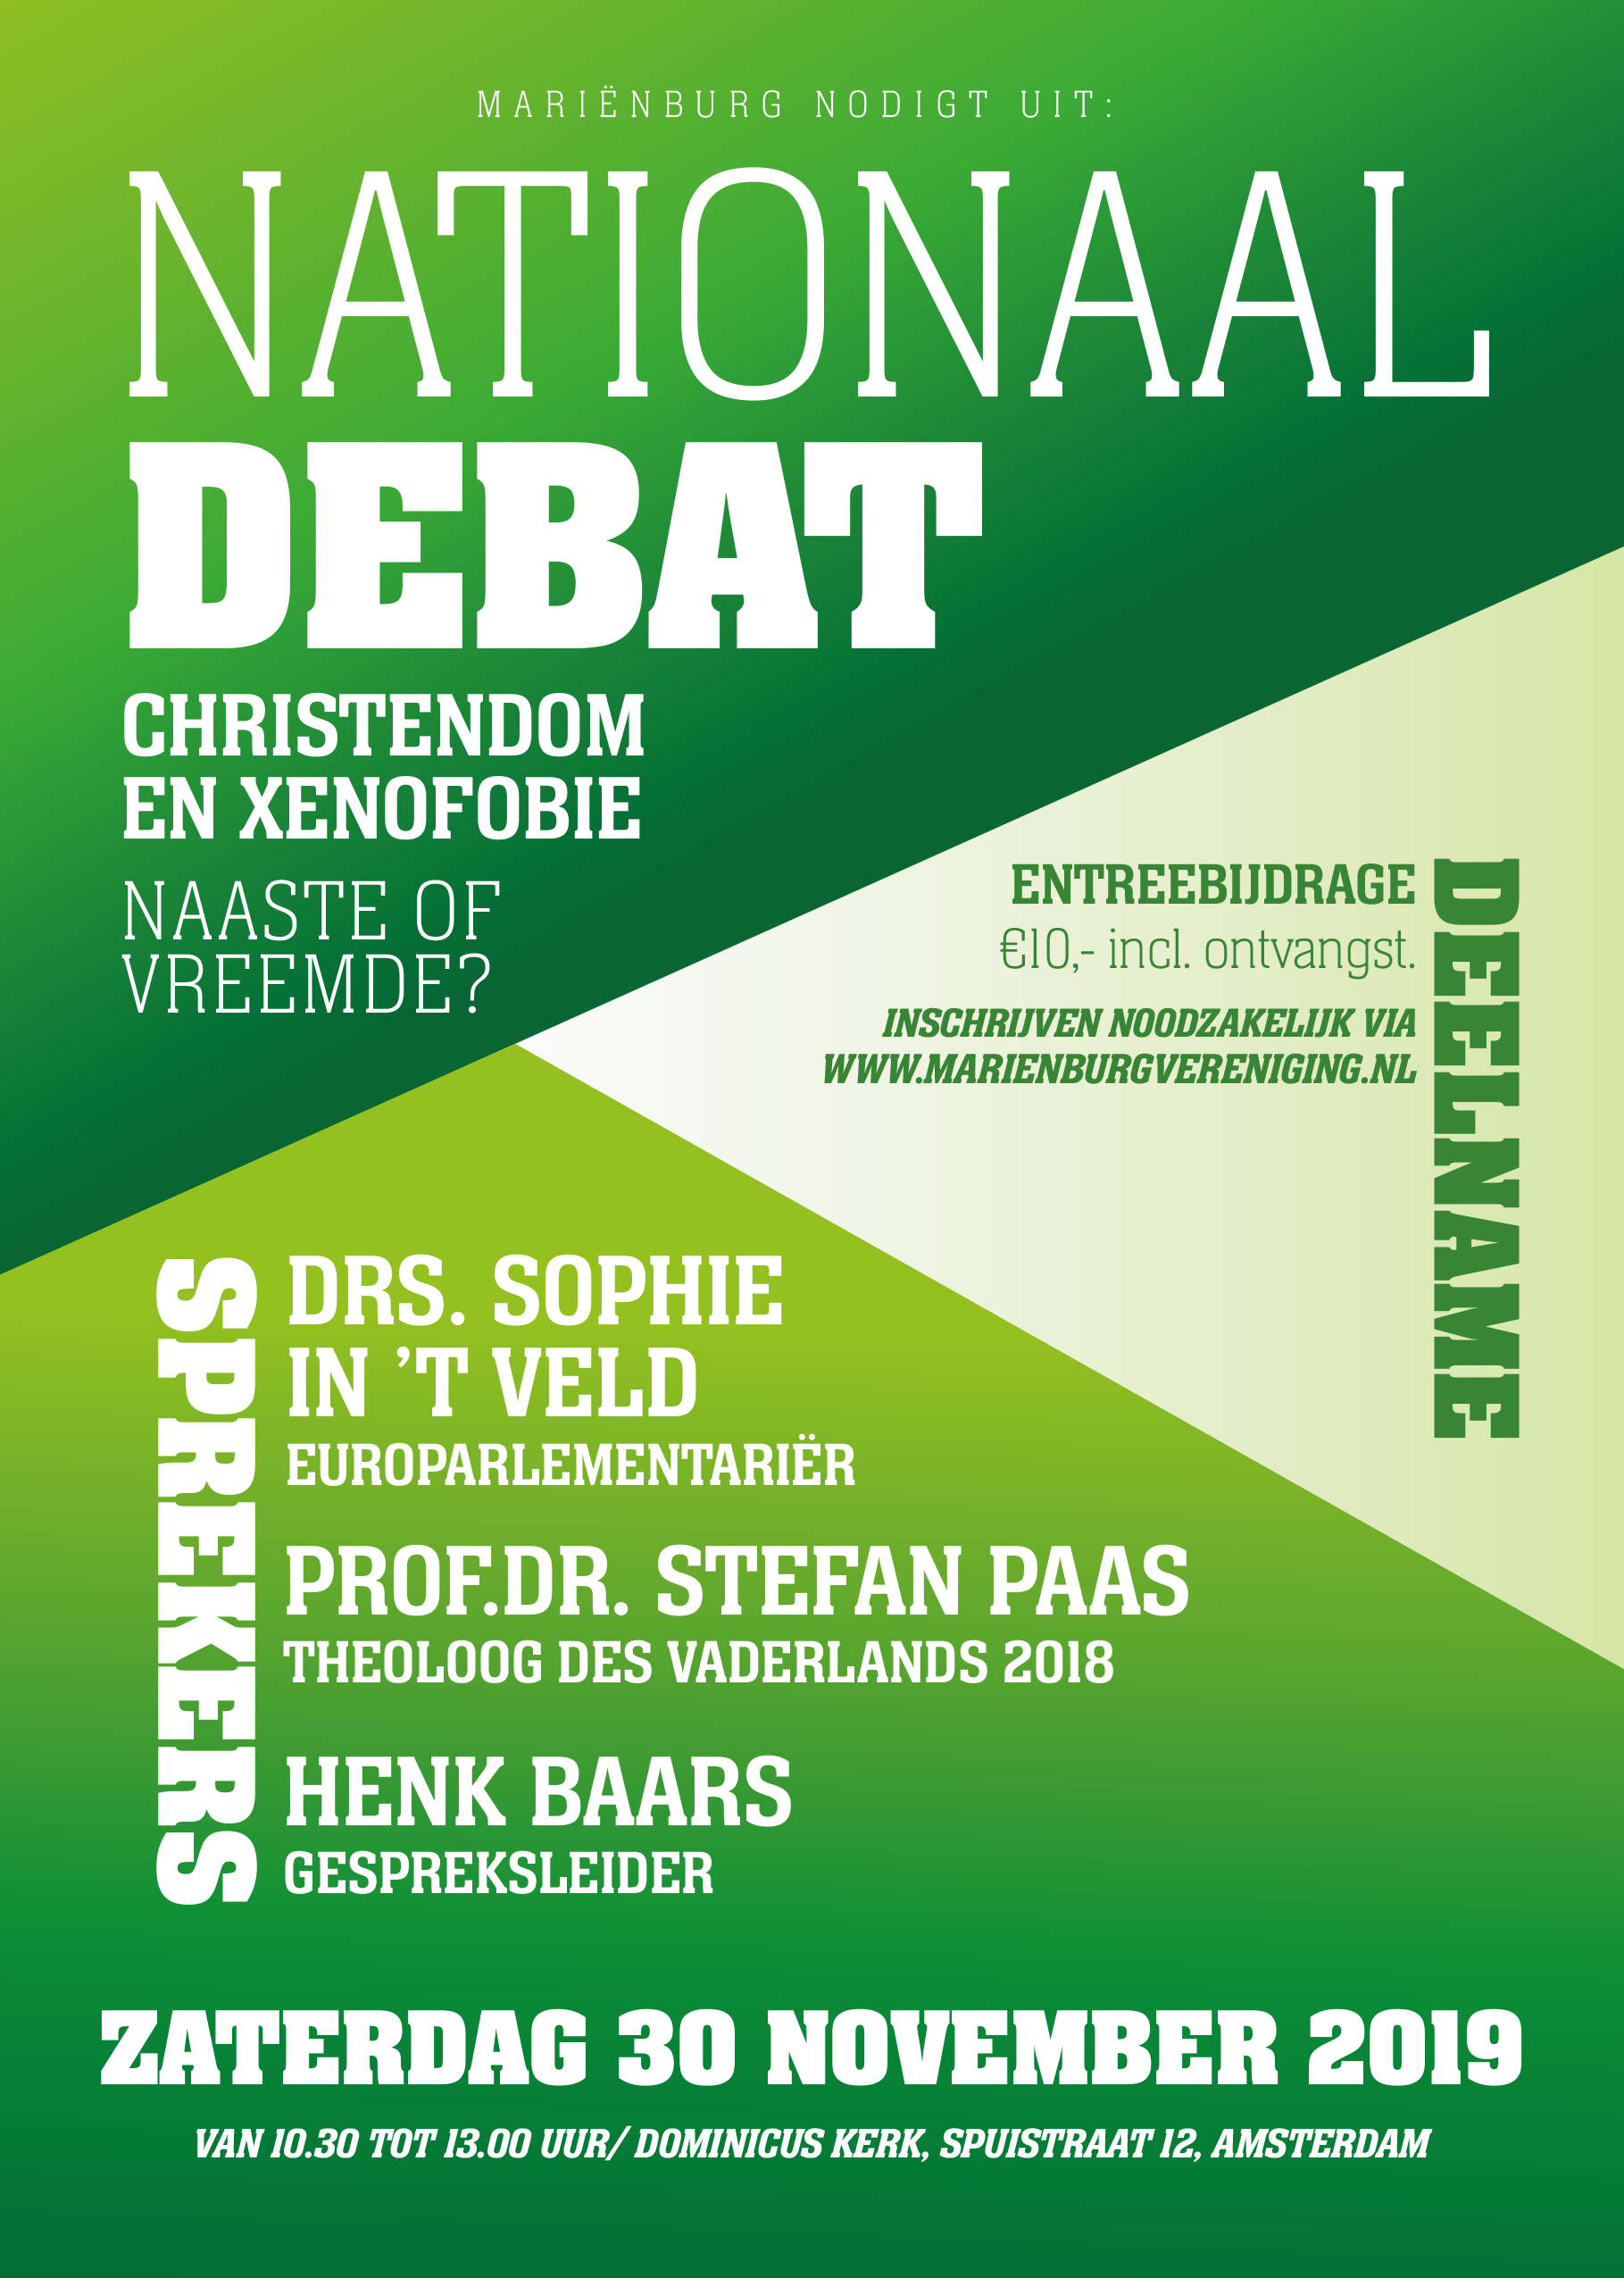 A5 Flyer Nationaal Debat 1